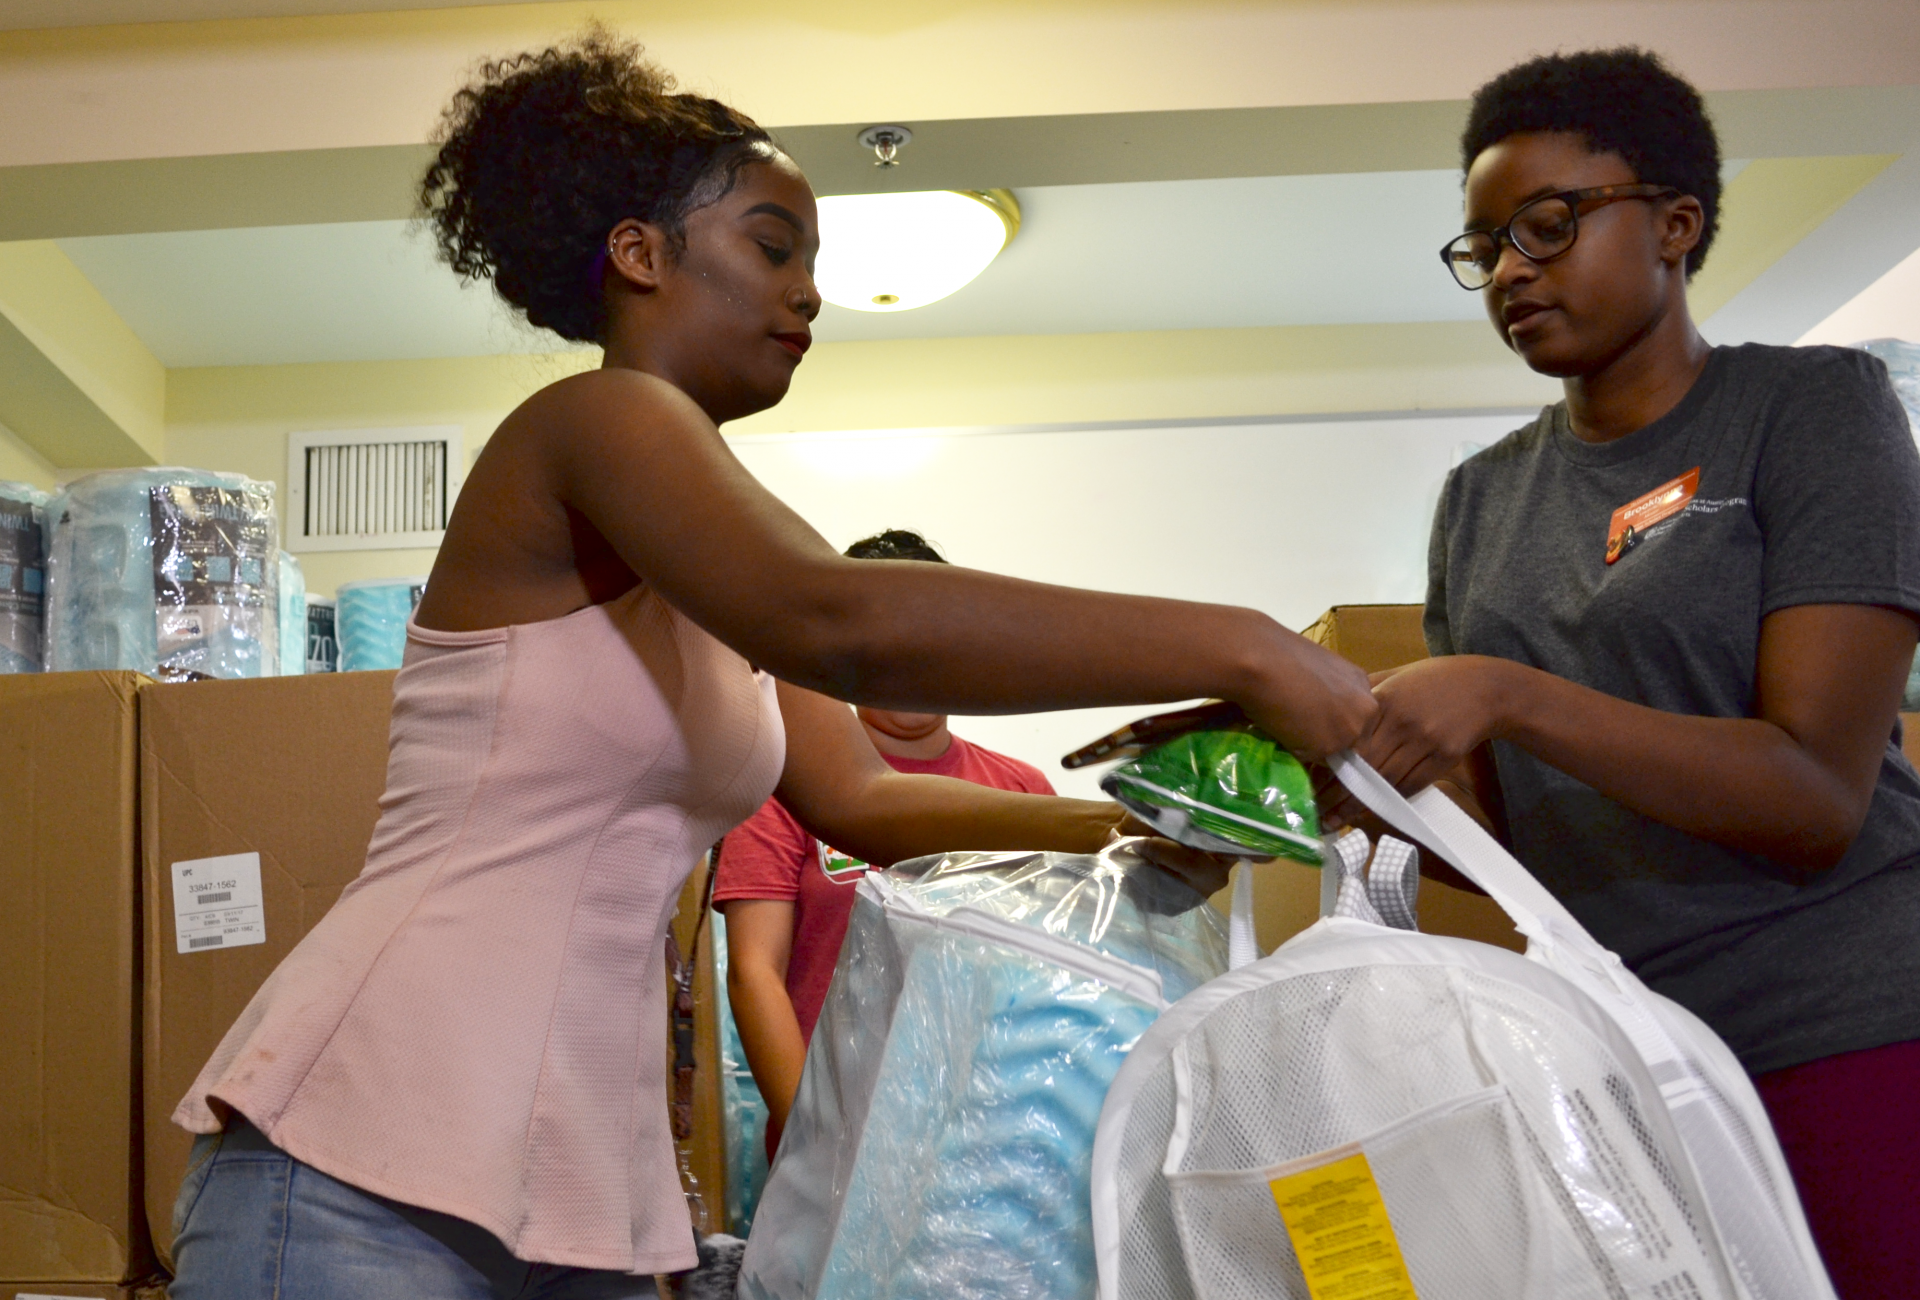 students in the College of Liberal Arts Foundation Scholars Program received bundles of dorm supplies